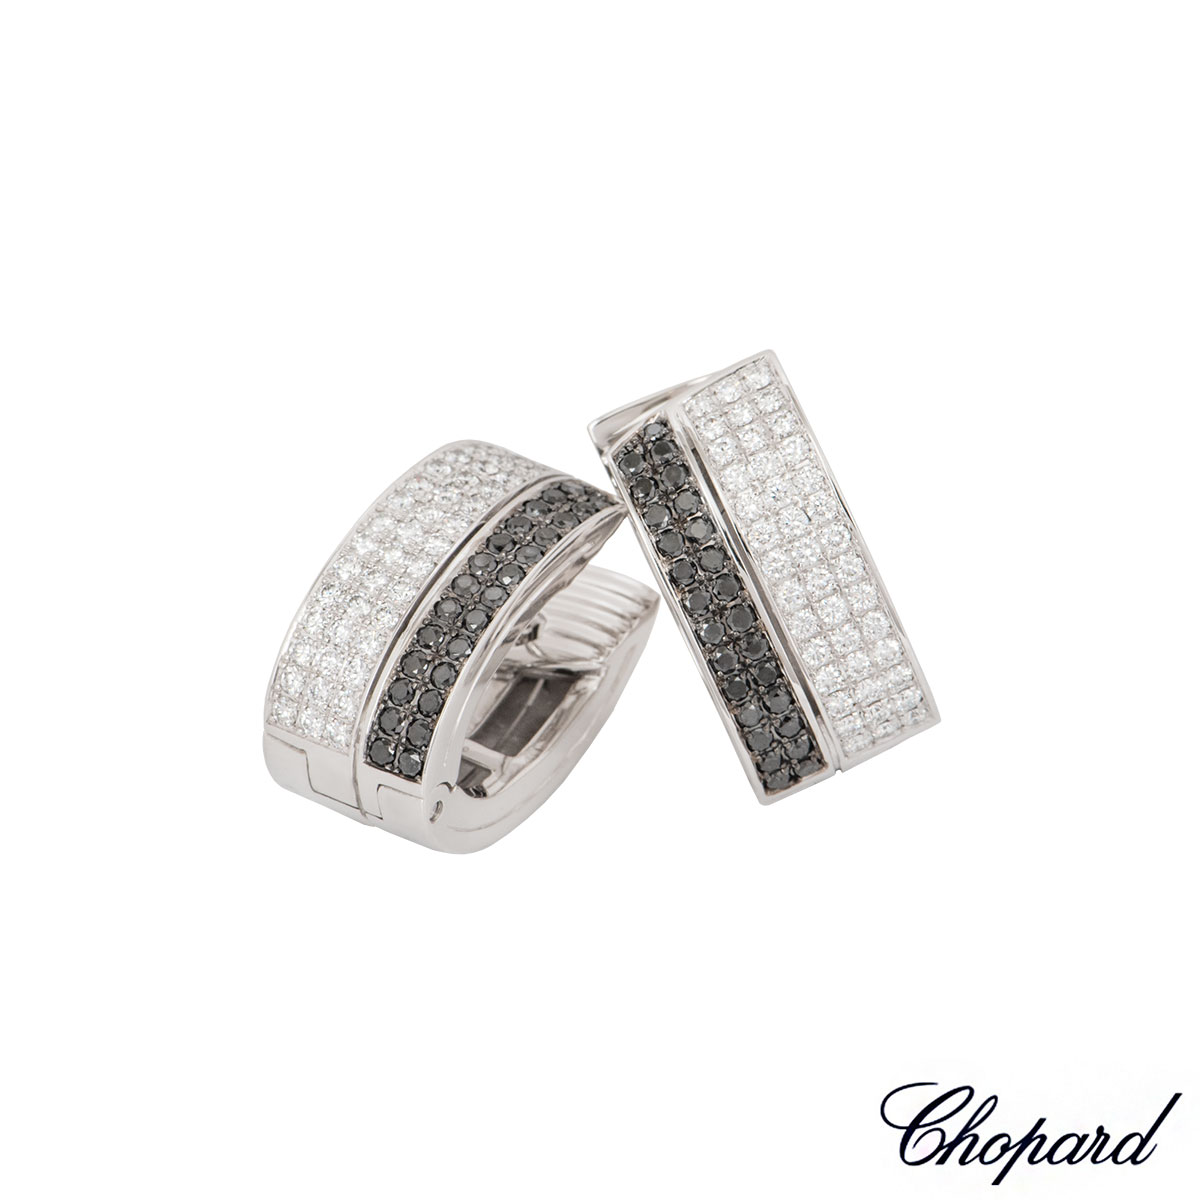 Chopard White Gold Diamond Set Hoop Earrings 844073-1001